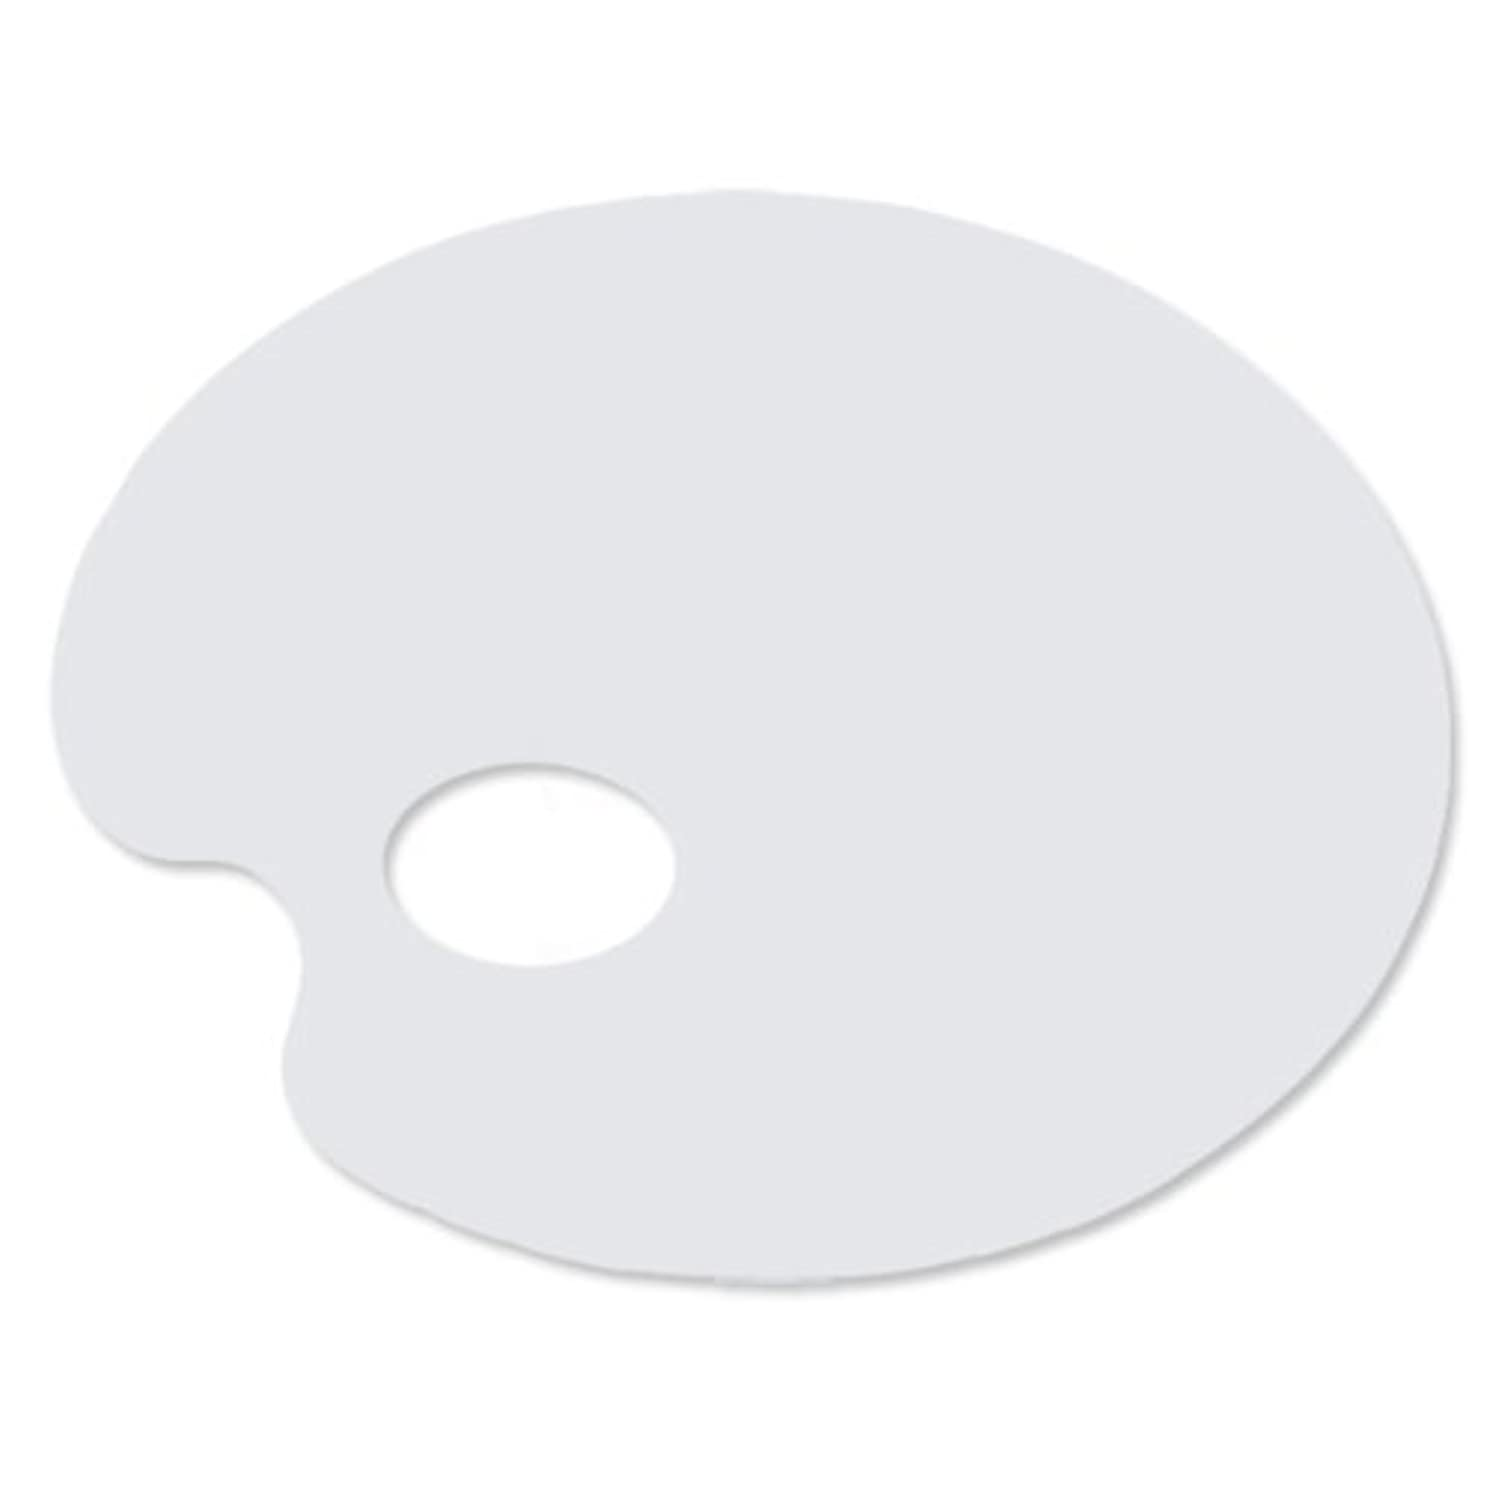 9-inch By 7-inch White Acrylic Palette